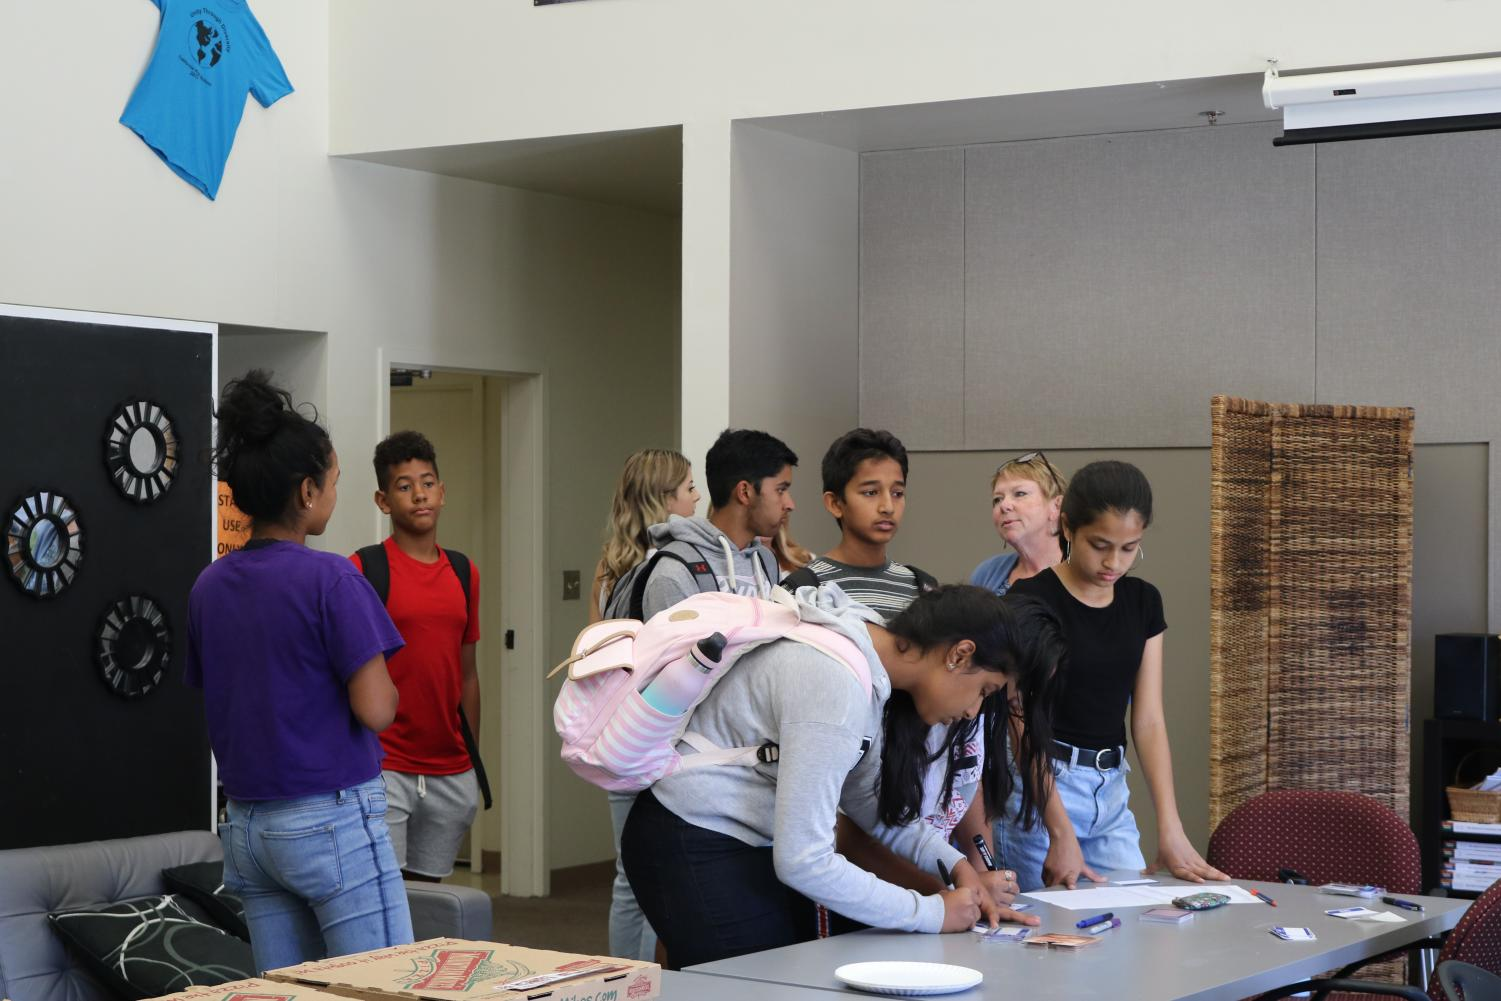 Students sign into the wellness room where they are welcome when they feel overwhelmed or simply need a place to relax.